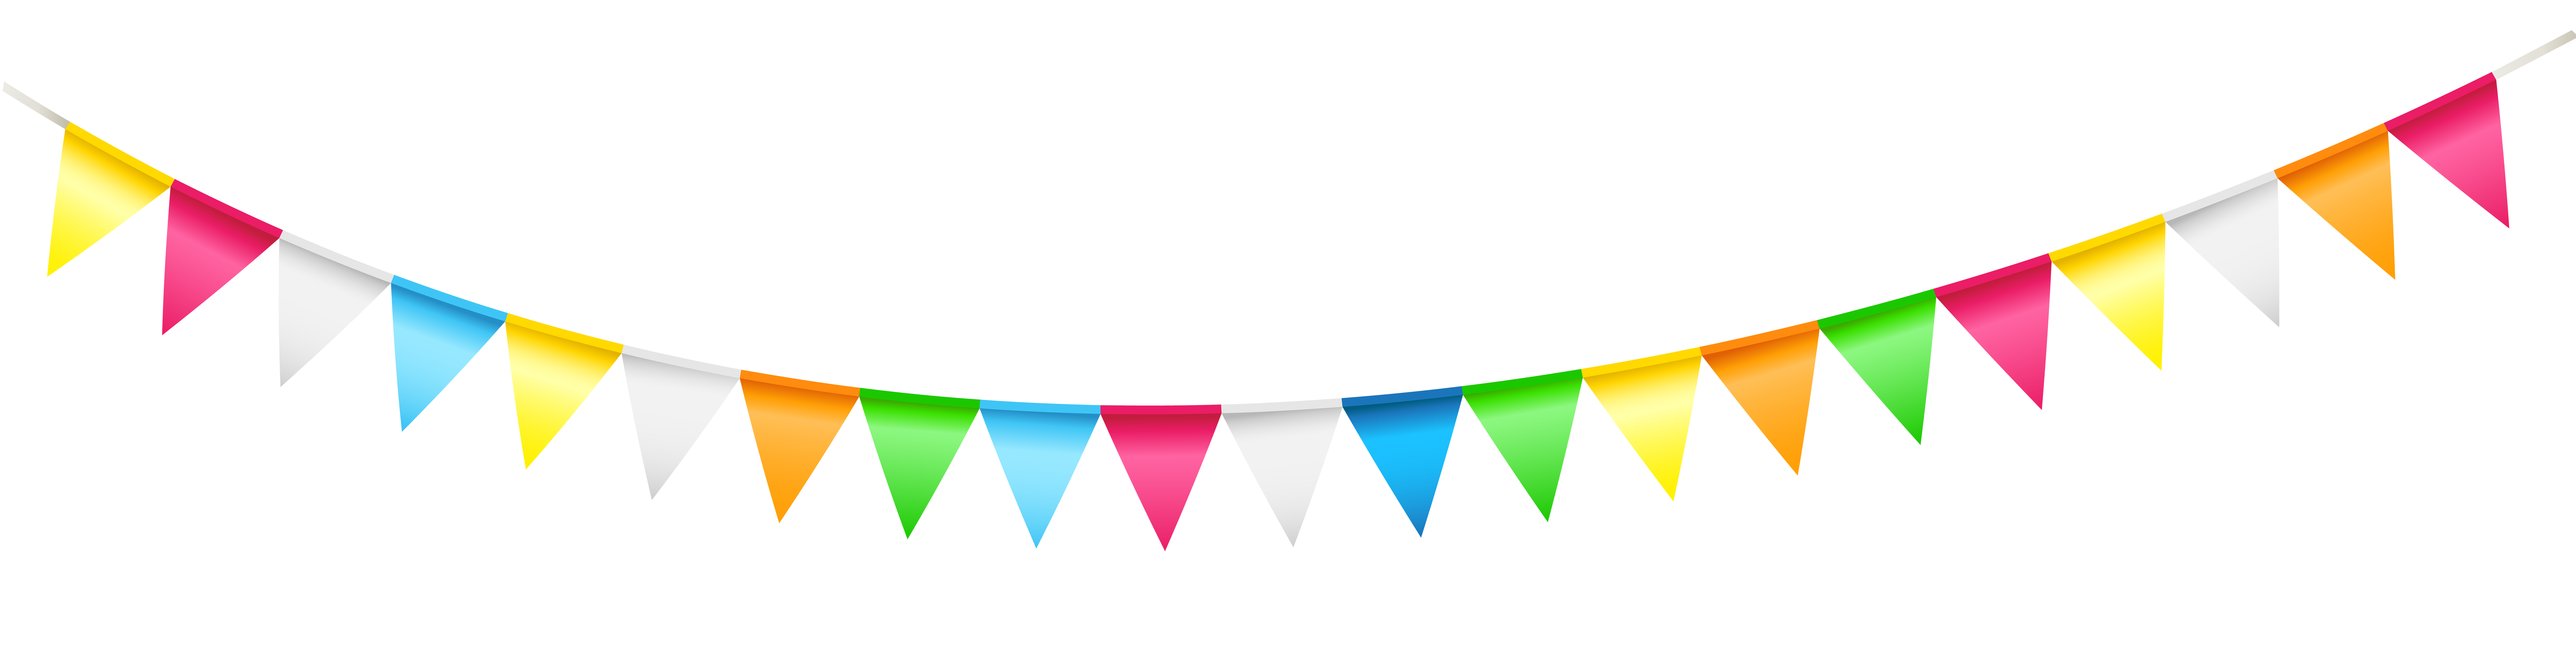 Party streamers png. Streamer transparent clip art